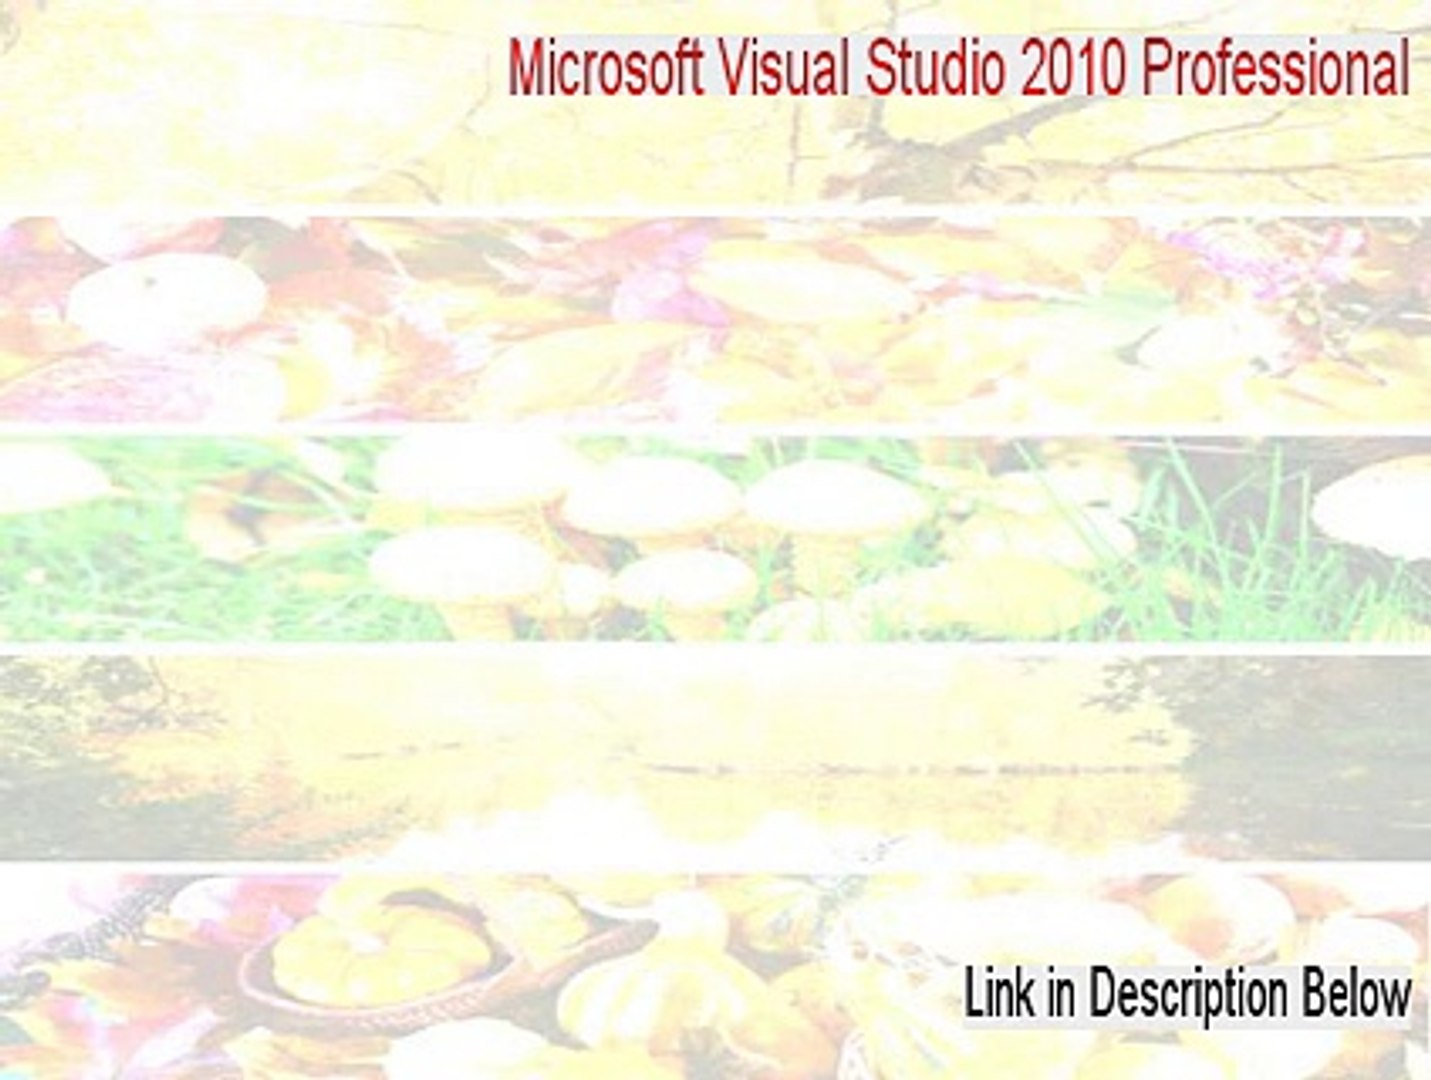 Microsoft Visual Studio 2010 Professional Cracked - microsoft visual studio  2010 professional - enu (2015)